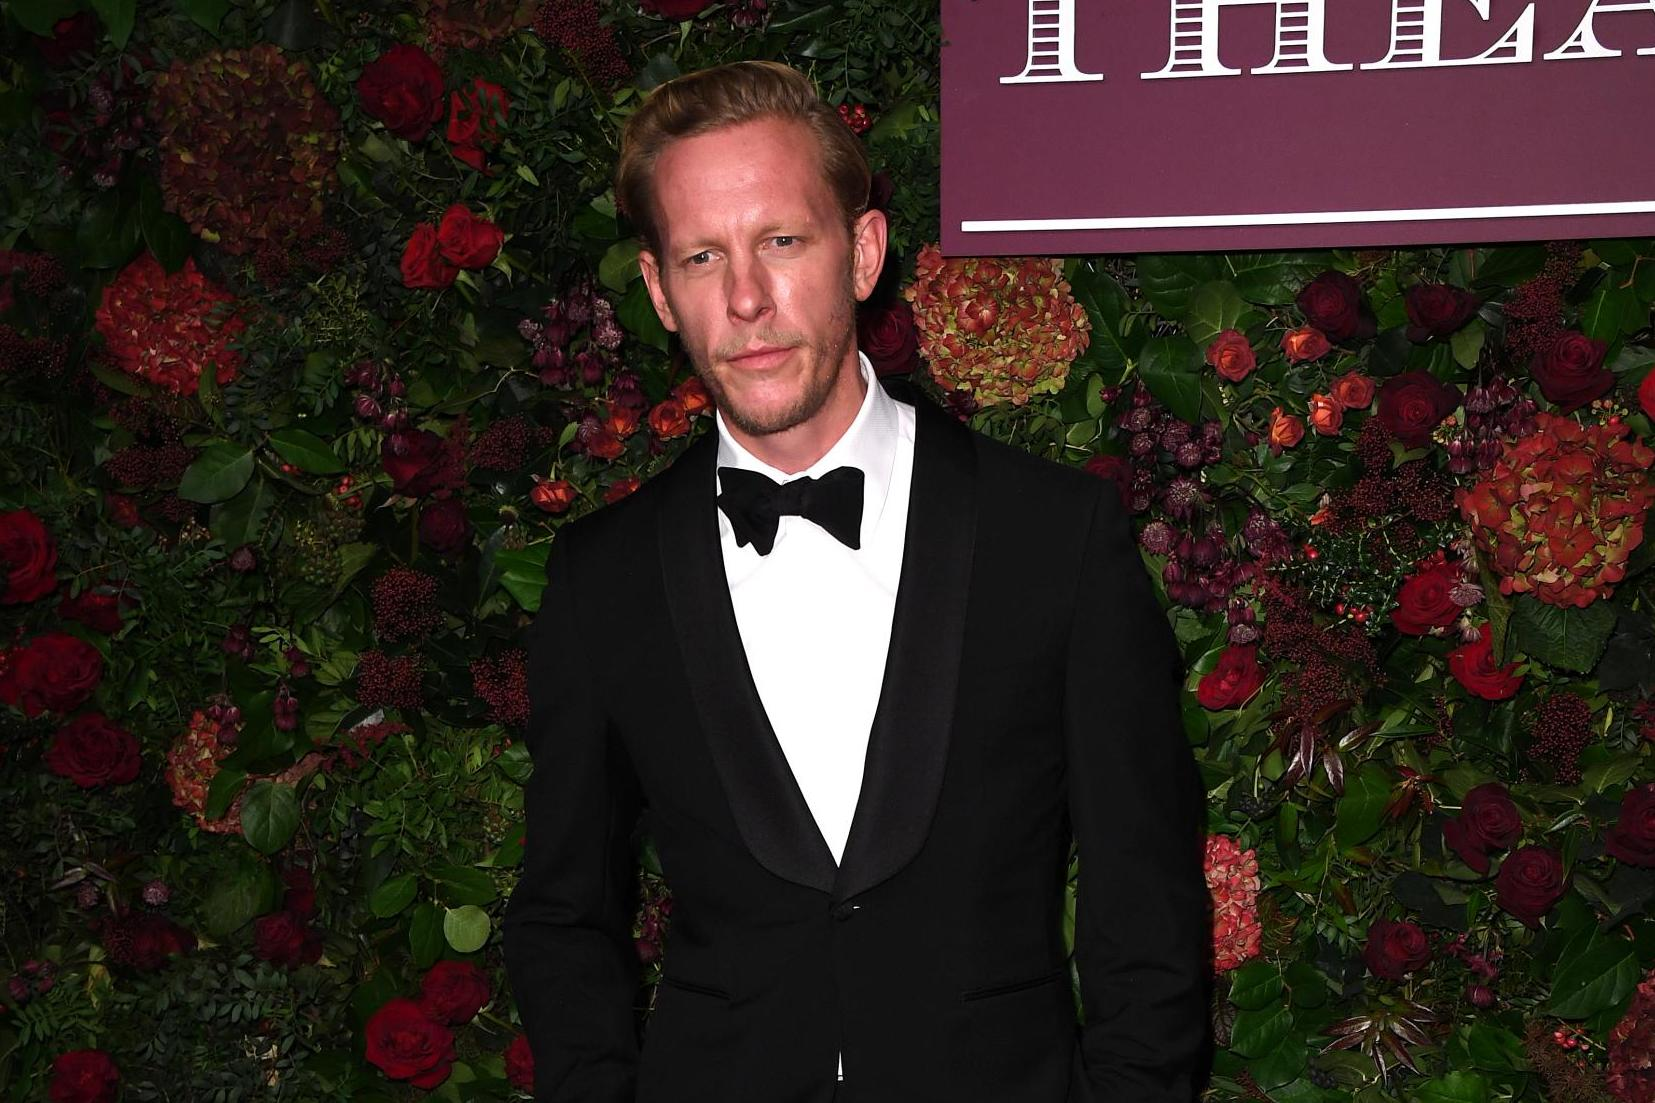 Laurence Fox broke up with 'too woke' girlfriend for supporting Gill…